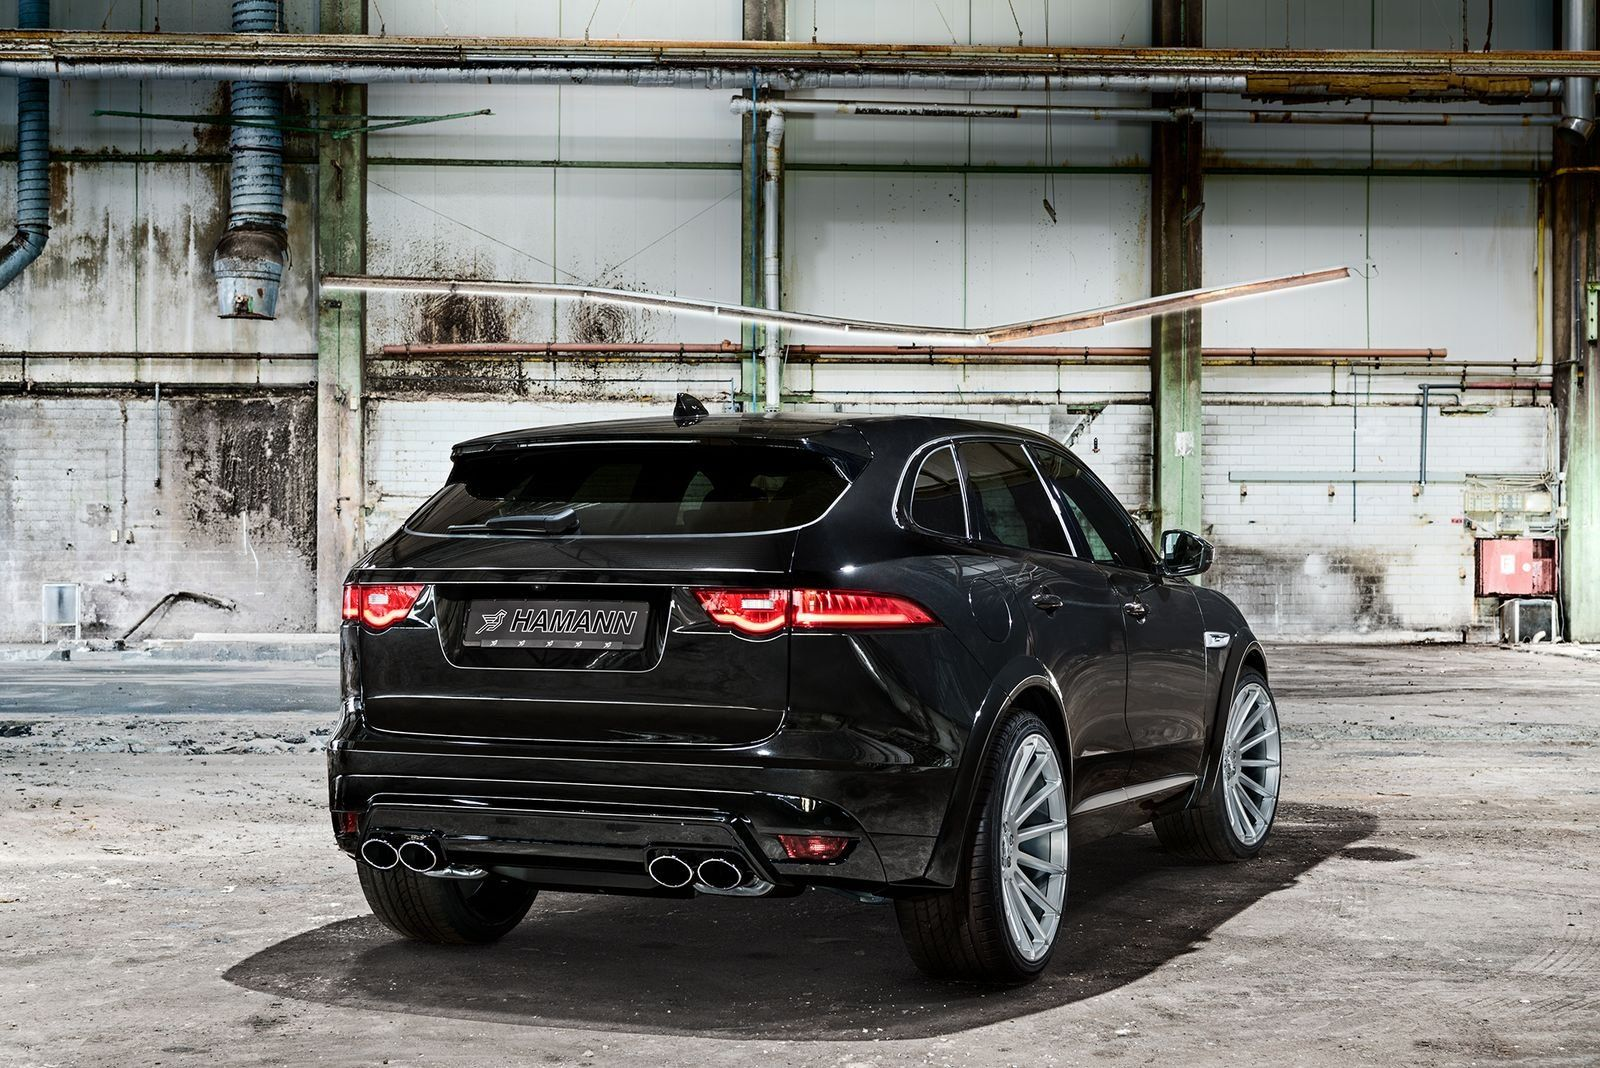 All Black Sinister Jaguar F Pace Gets Custom Parts Jaguar Jaguar Fpace Jaguar Car